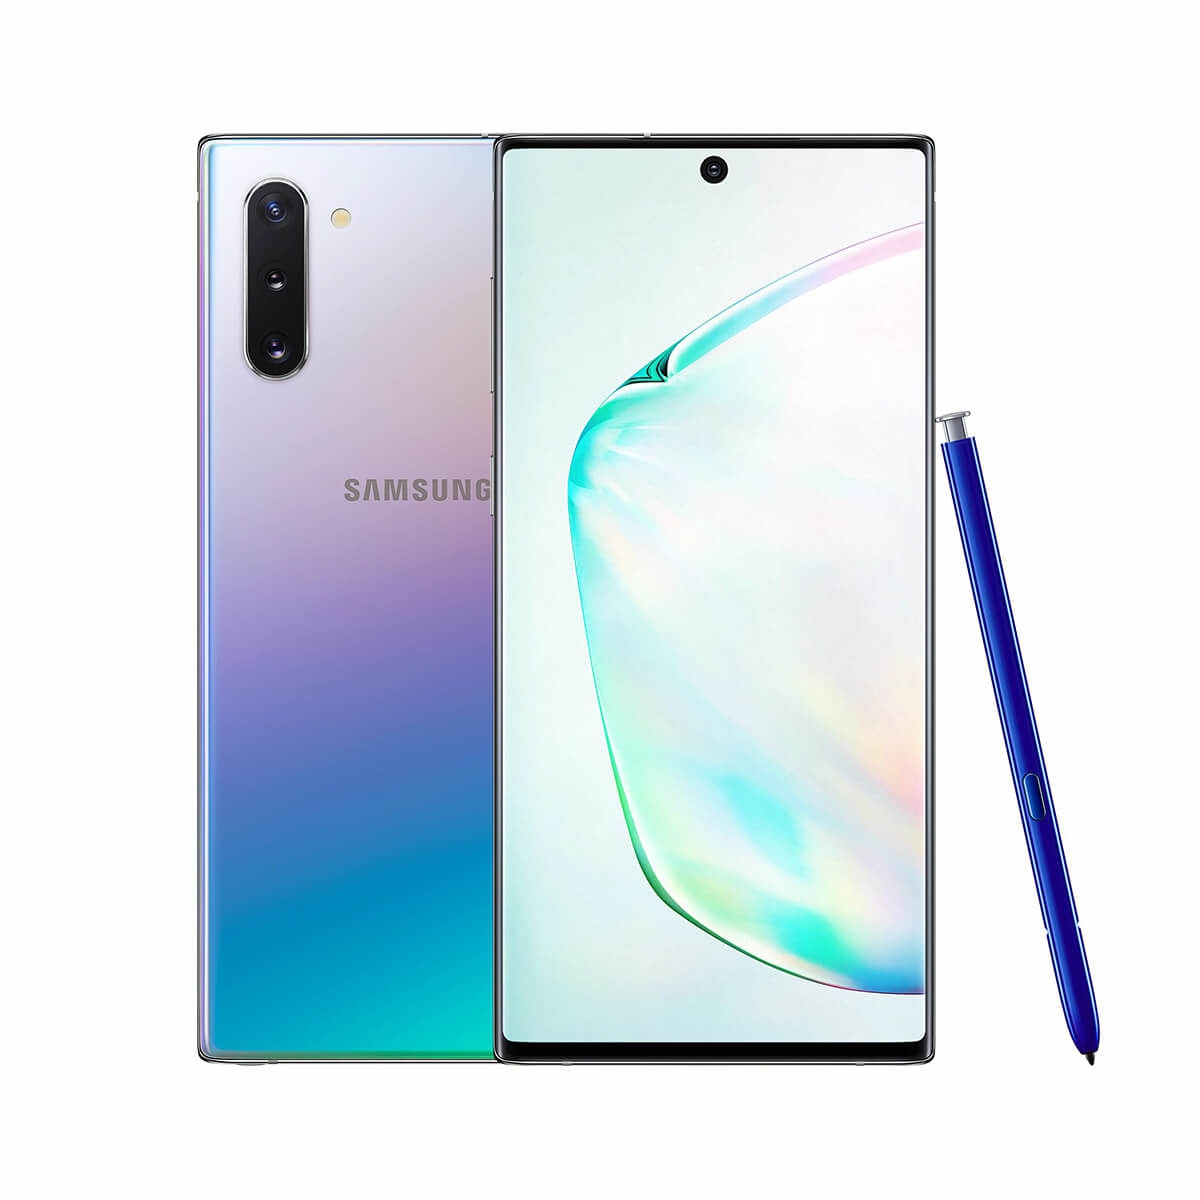 【傑昇通信】SAMSUNG Galaxy Note 10 (8G/256G)。空機破盤價